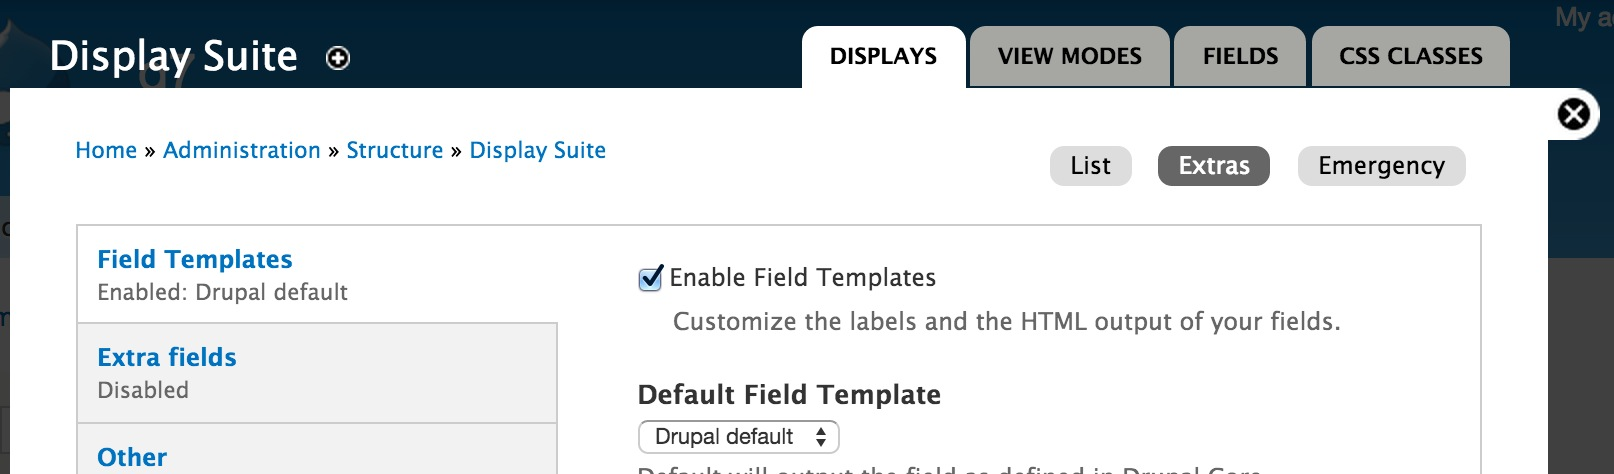 How to Use Display Suite Field Templates in Drupal 7 - WebWash